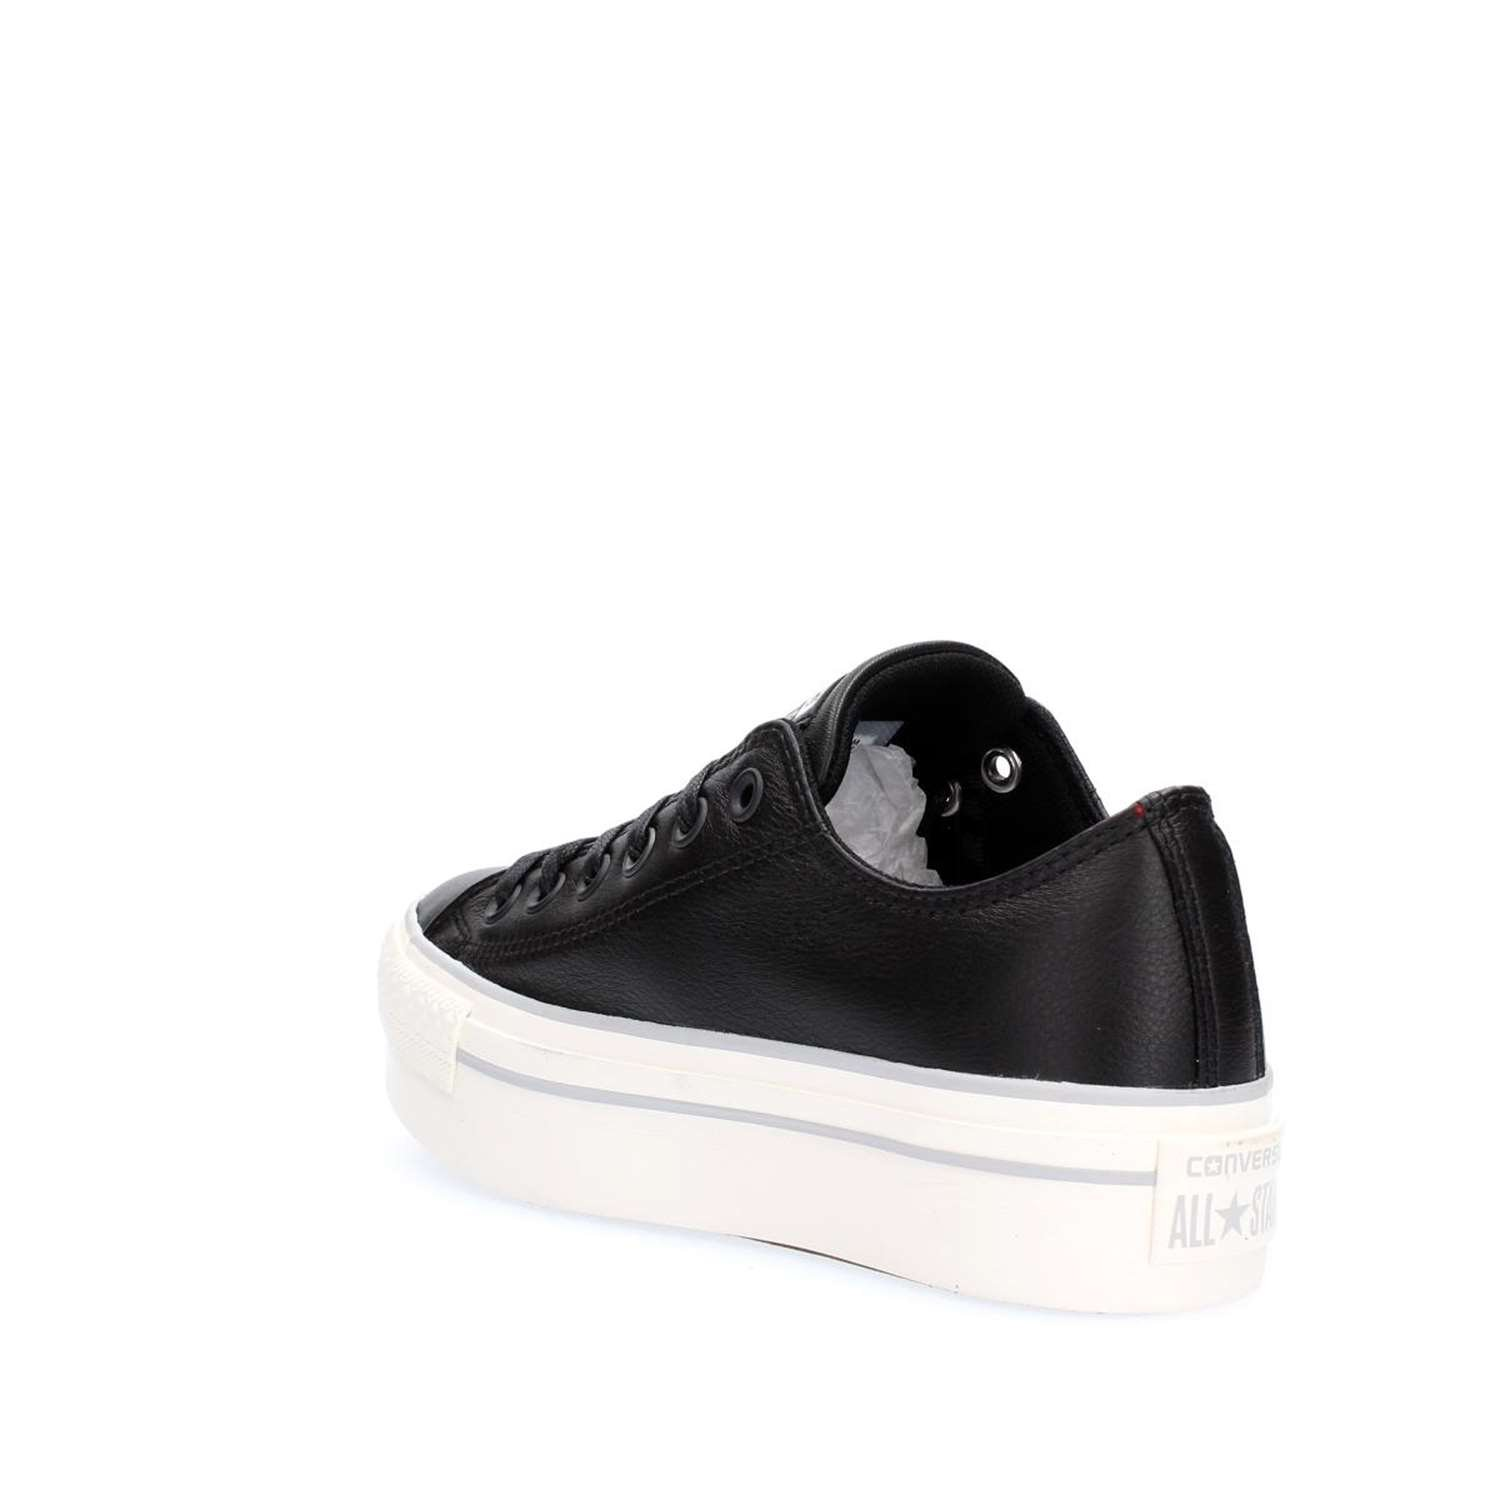 Converse 559016c Sneakers Mujer Black/mouse/white 35 AIJjTl